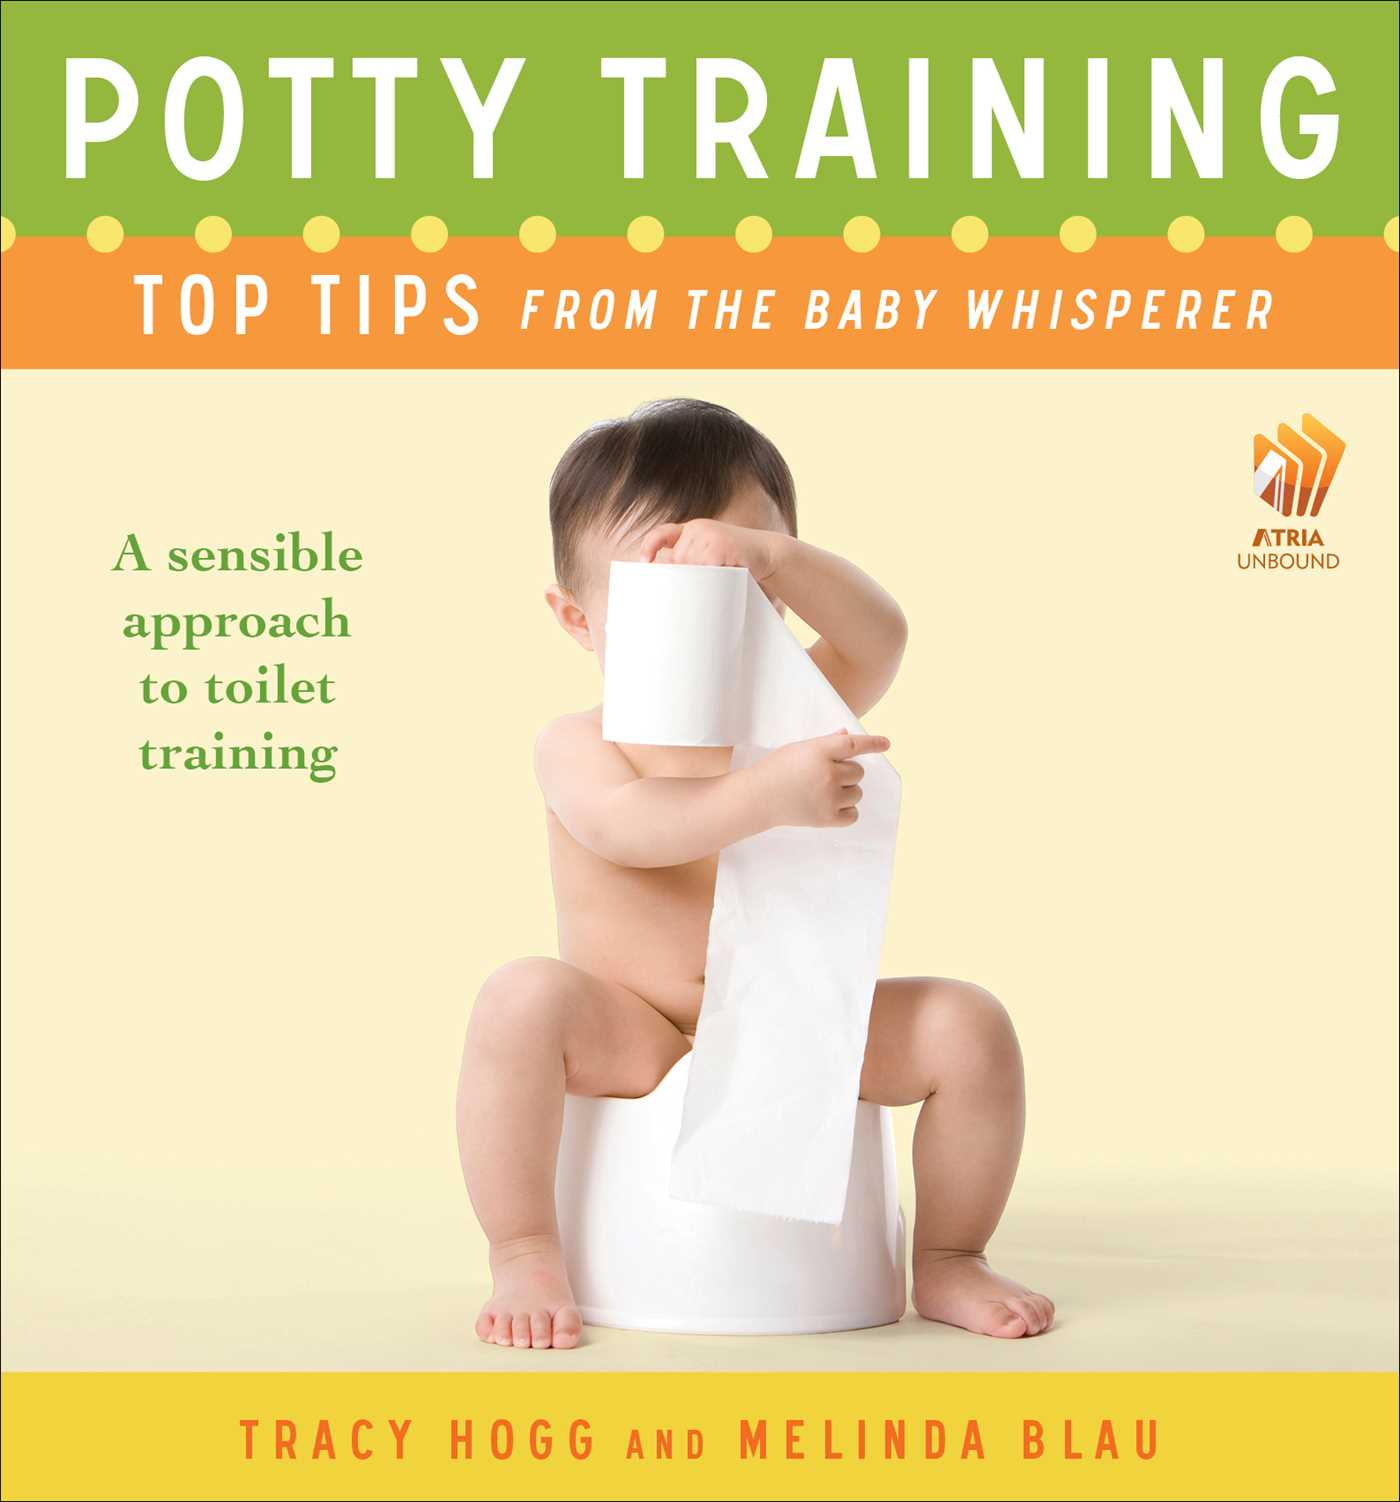 Potty-training-top-tips-from-the-baby-whisperer-9781451650372_hr